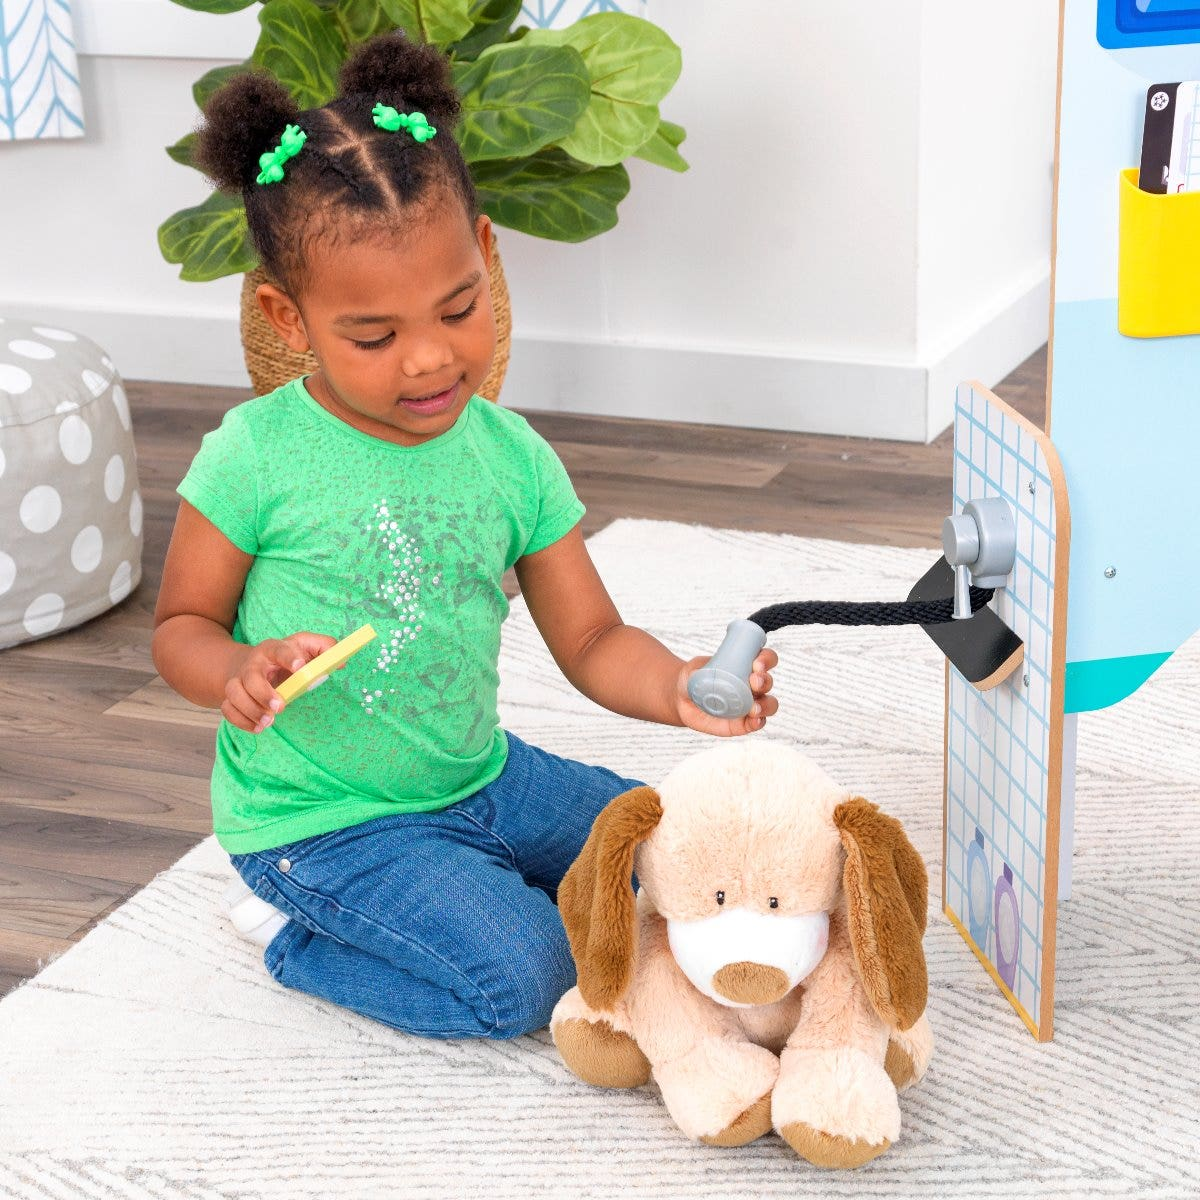 Pampered Pooch: Pets can get all cleaned up at the grooming station. With a removable pretend water nozzle and bar of soap, this area is ready for bubbles of fun.